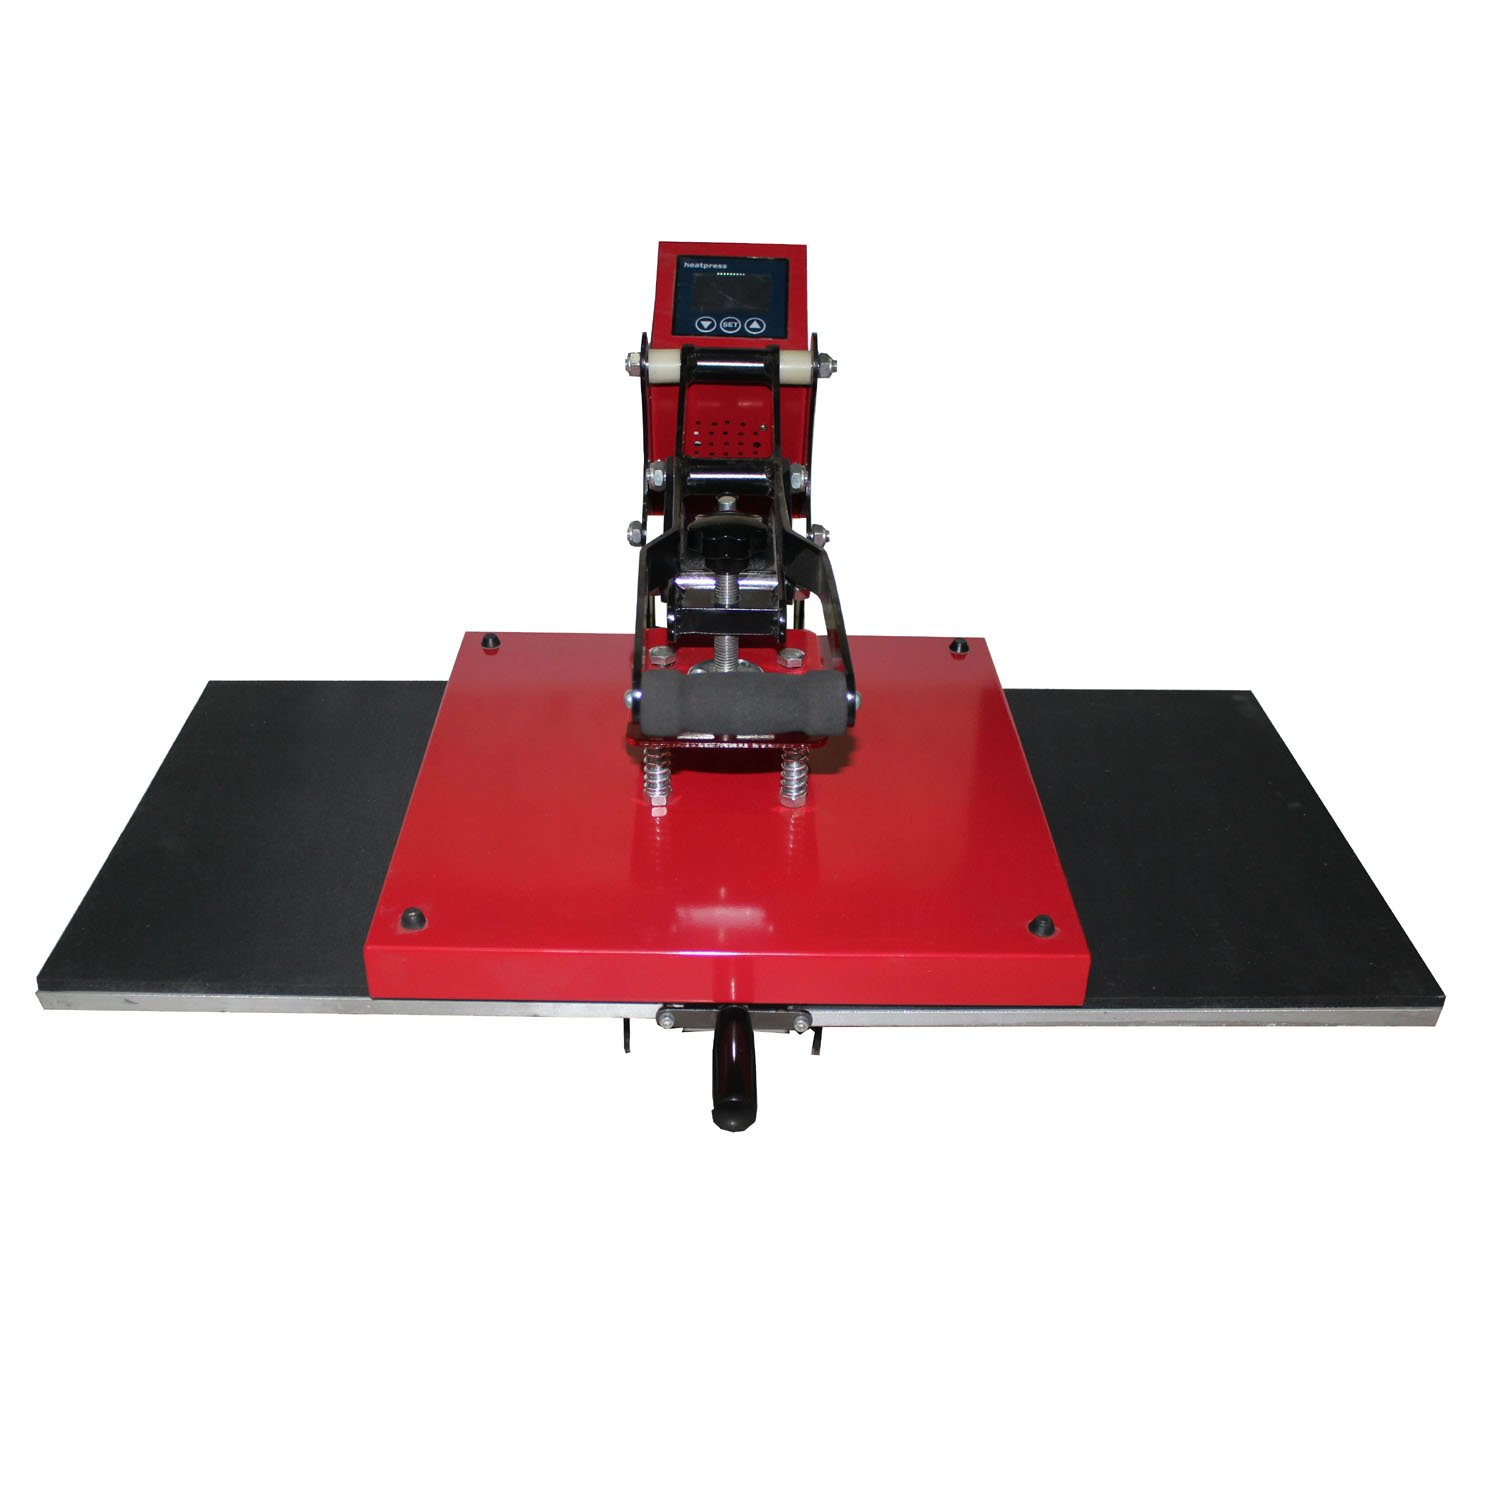 AP1801 Manual Two Stations Portability Moving Digital Heat Press Machine